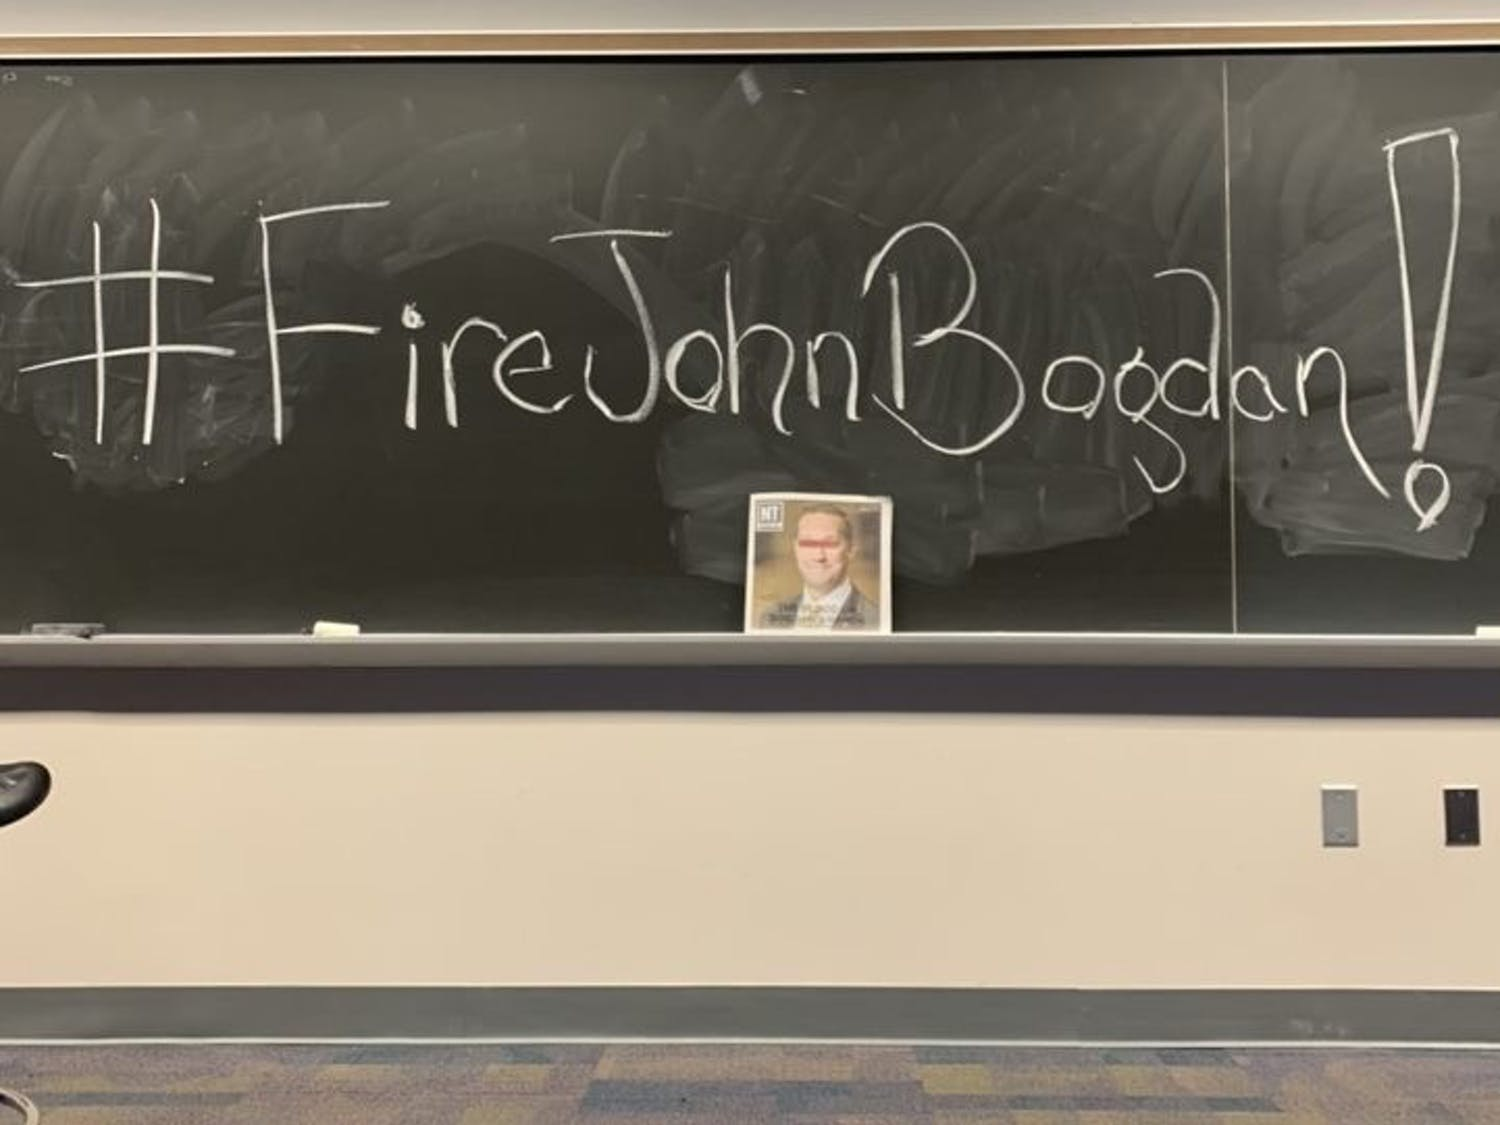 Now, a coalition of anonymous students, faculty, staff and community members has called for the immediate removal of John Bogdan, the associate vice chancellor of safety and security at UNC-Charlotte. Photo courtesy of Coalition to Remove John Bogdan